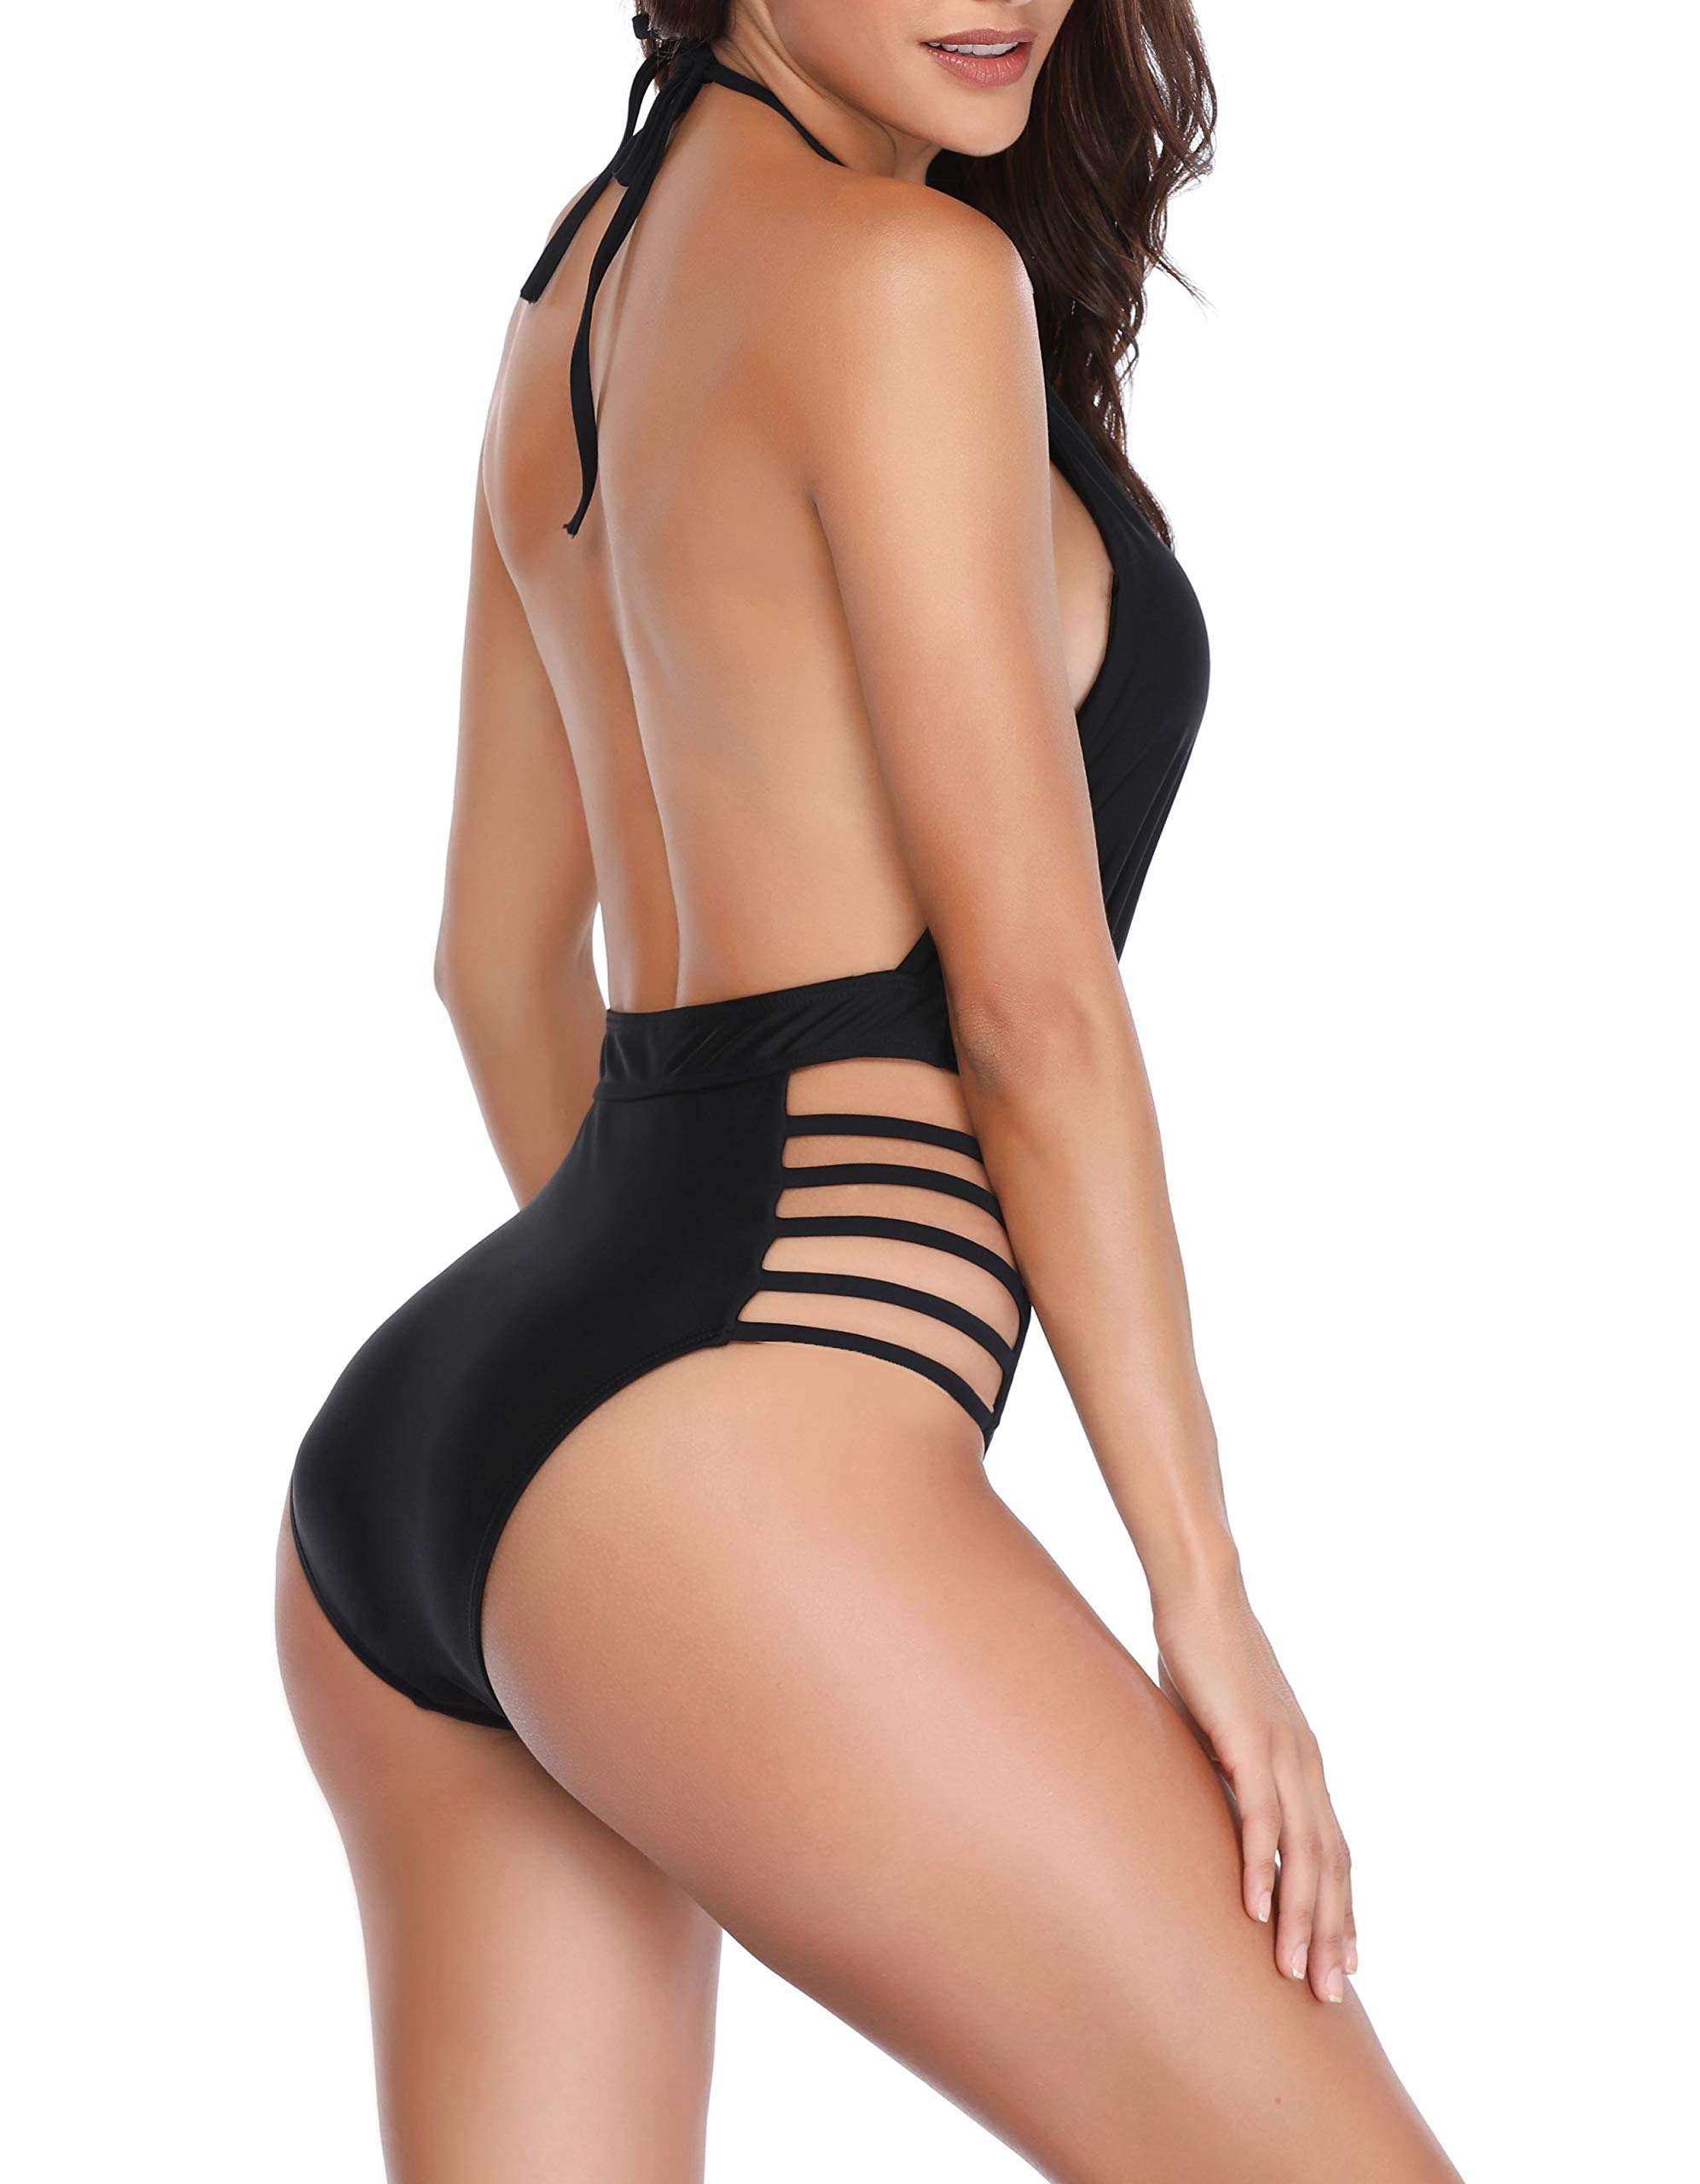 Yong Dong Sexy One Piece Monokini Swimsuits for Women Halter V Neck Plunge Lace Up Bathing Suits Black M